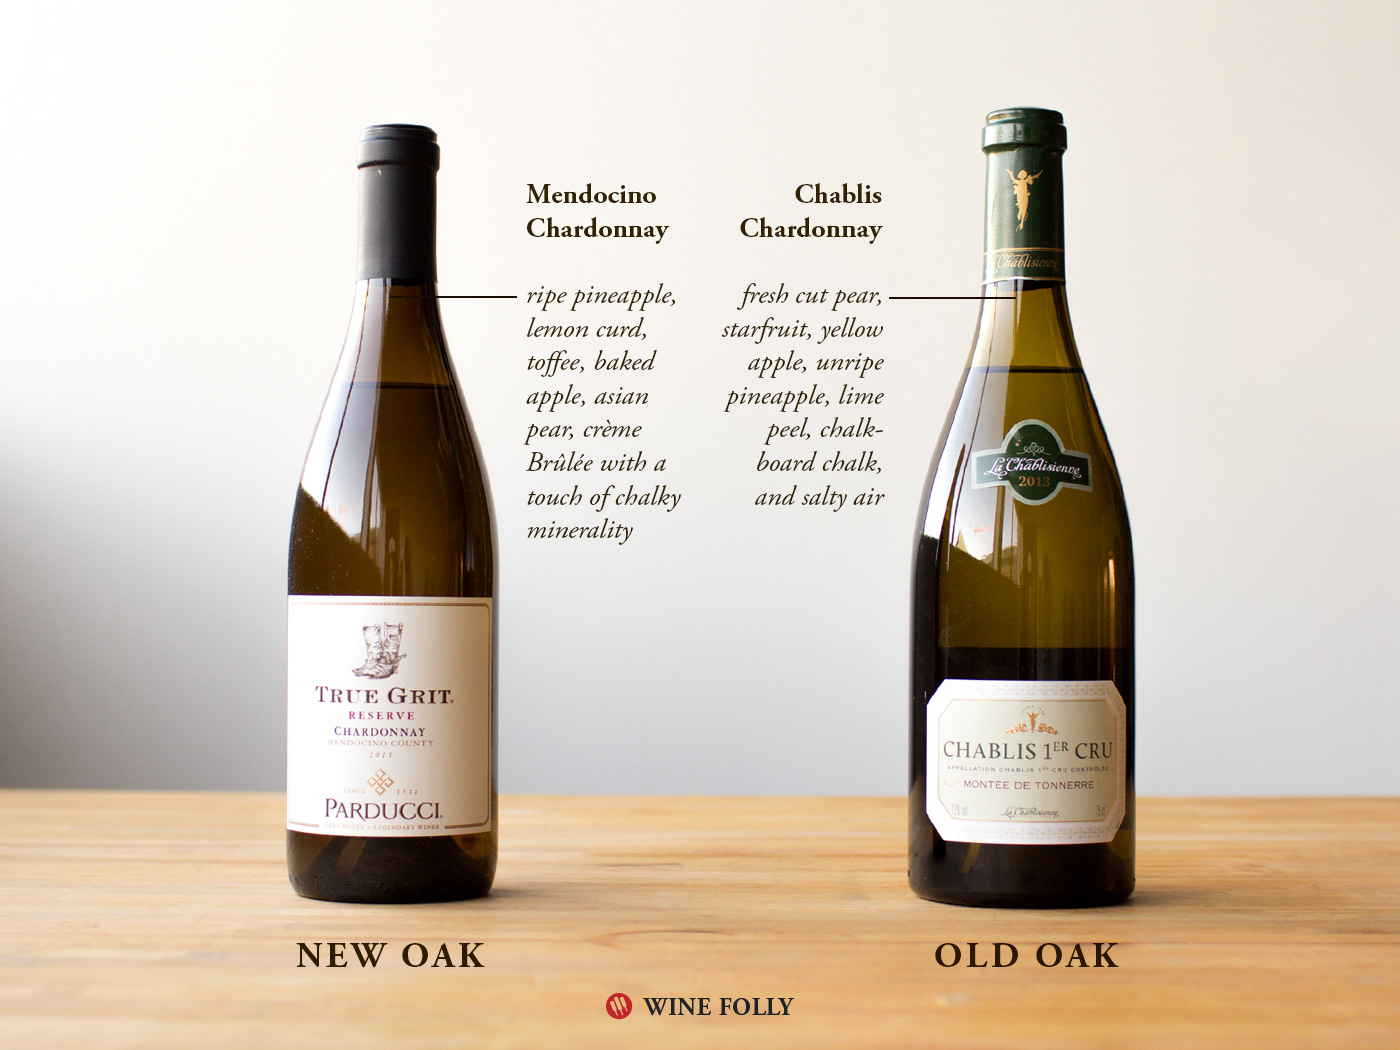 unoaked-vs-oaked-chardonnay